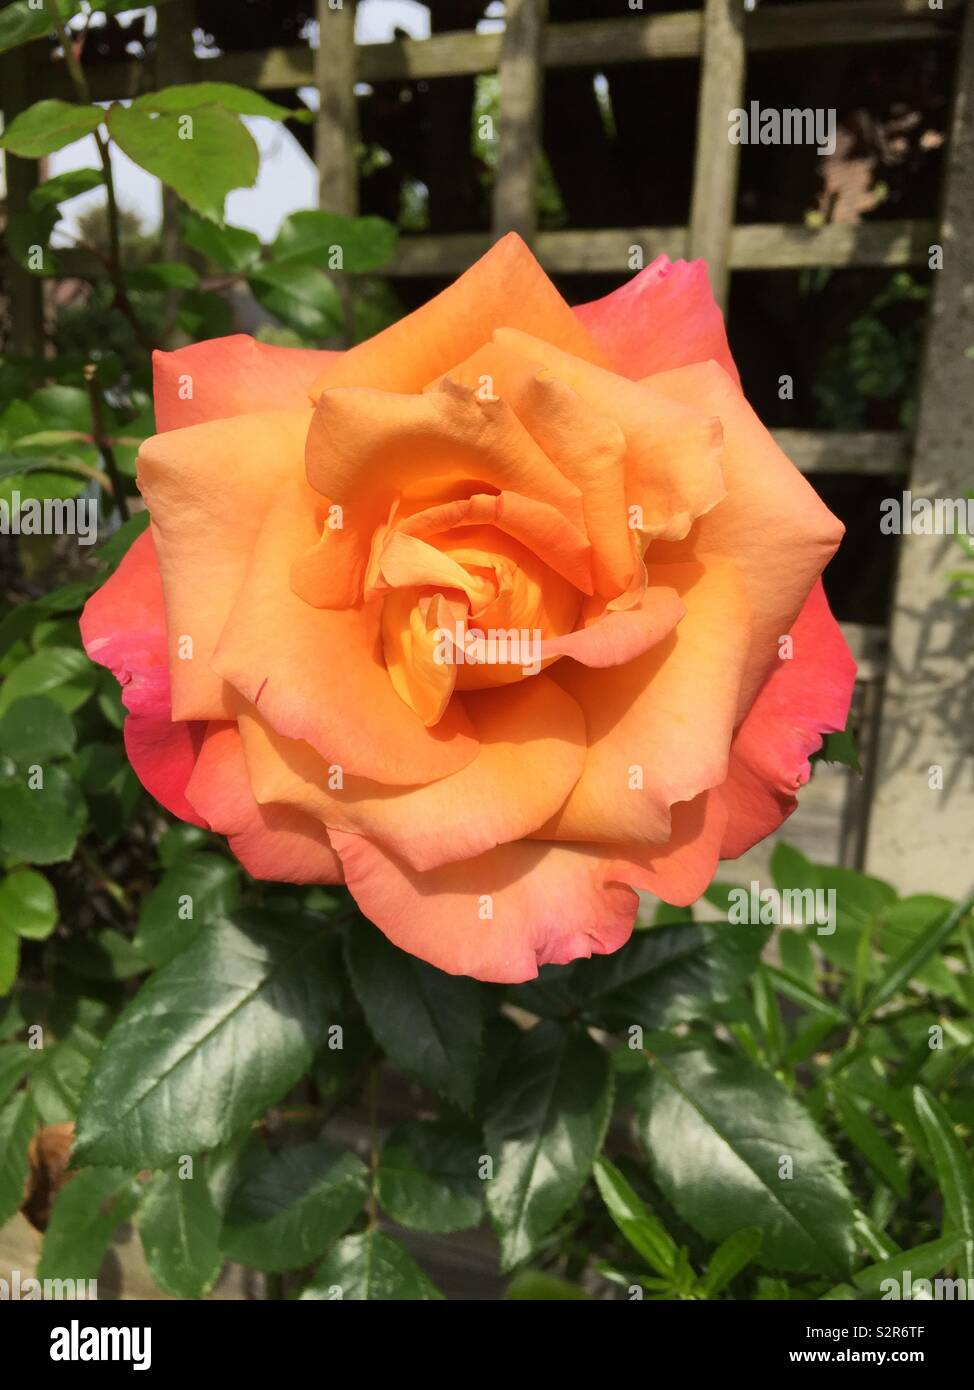 Peach garden rose - Stock Image